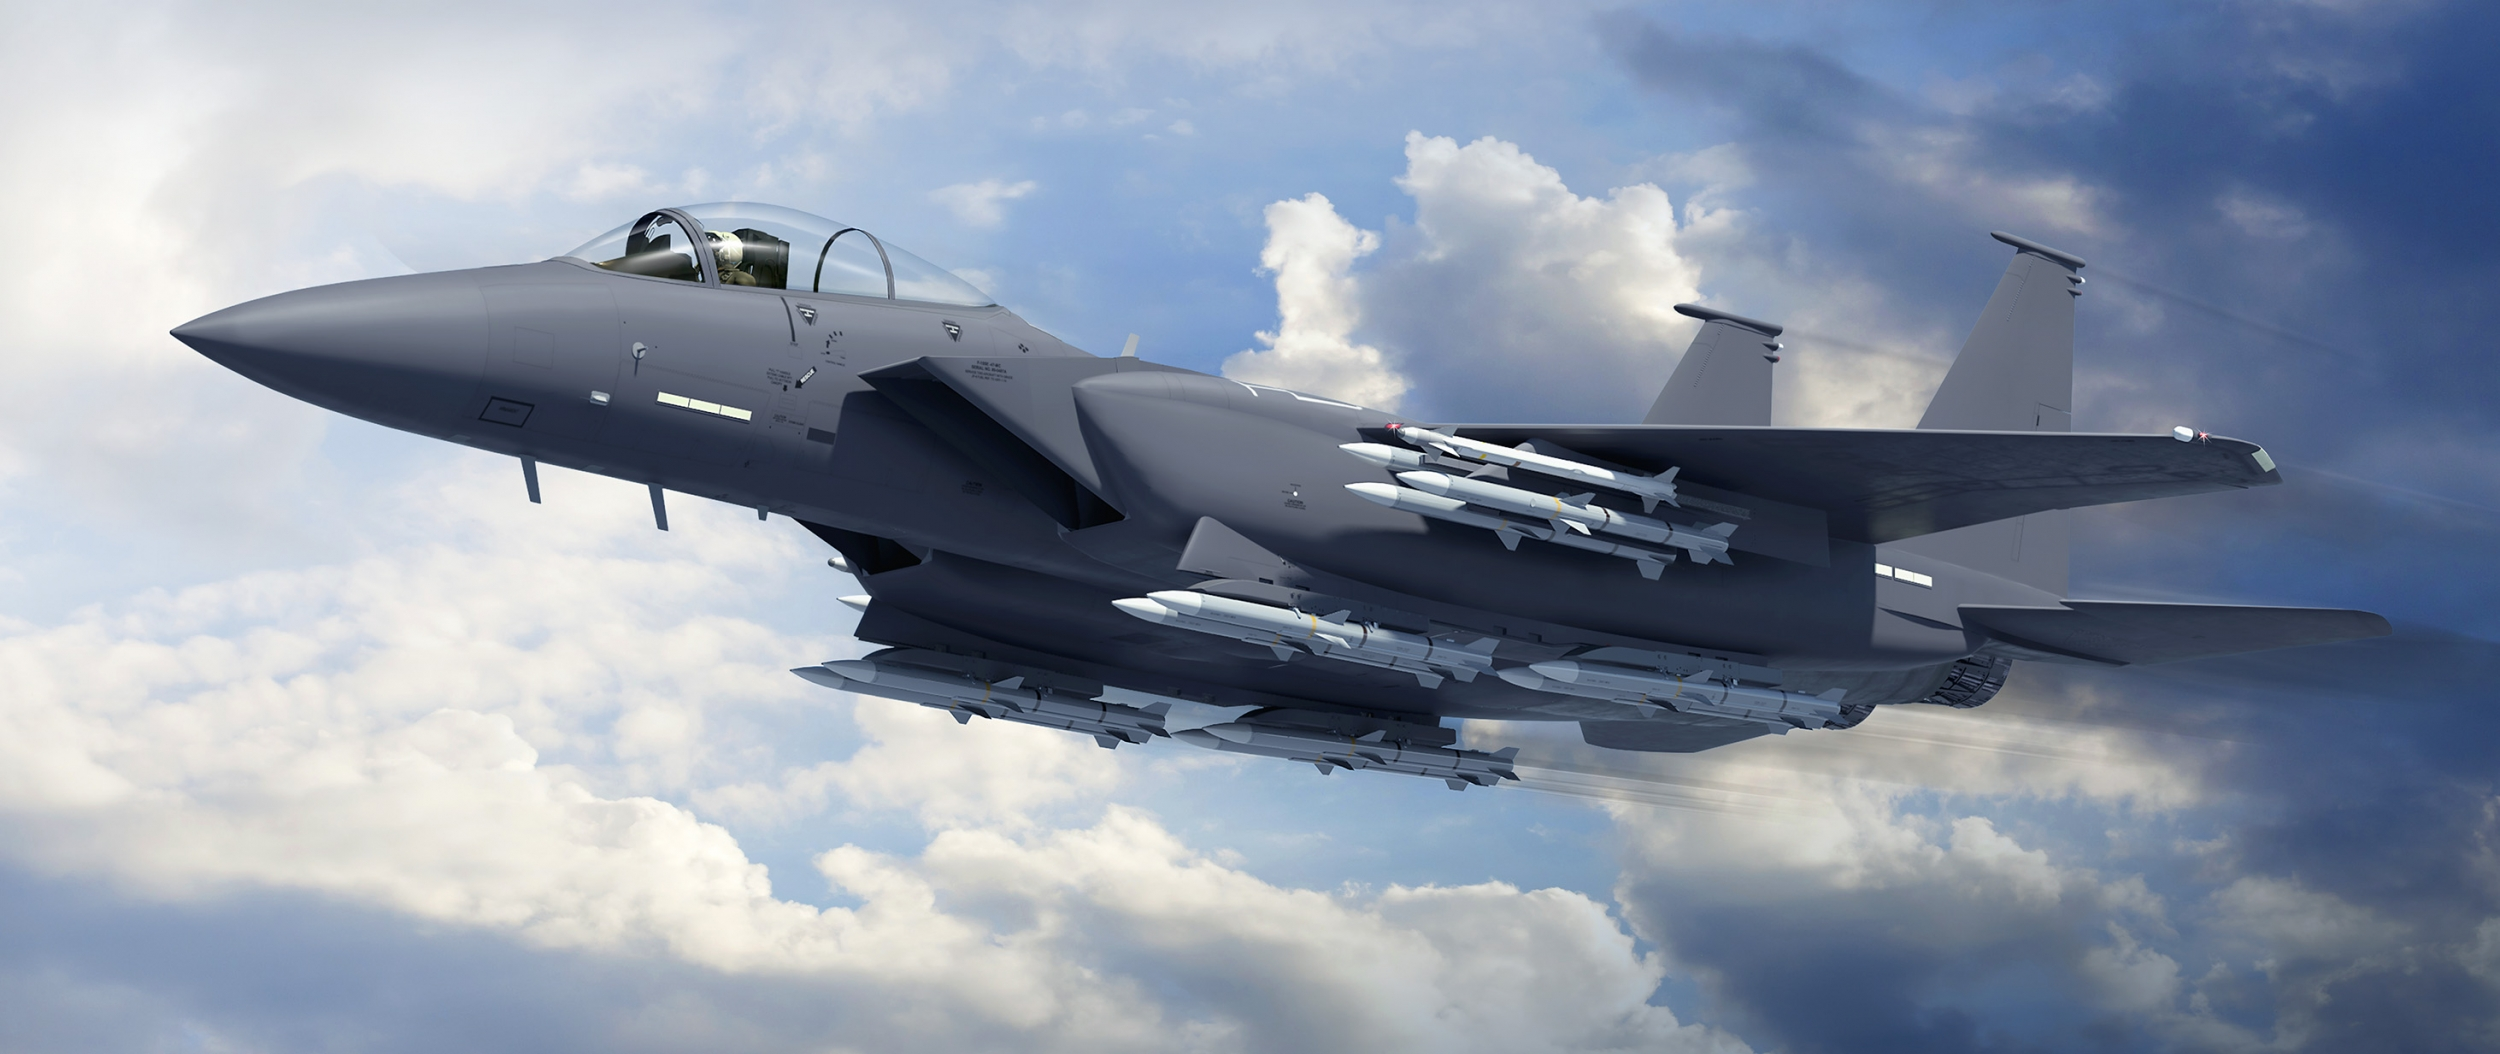 silent helicopter with Boeing Proposes New Life Lethality F 15c Fighter on Watch in addition File A British Army WAH 64 'Apache' attack helicopter prior to firing its underslung 30mm cannon  Lulworth C  Bovington Ranges  Dorset  19 11 2002 MOD 45142233 besides The Drone War Expands likewise 13265 A 164 Wipeout Concept A 10 Warthog From Arma 3 Indev also Aurora Unveils Evtol Aircraft.